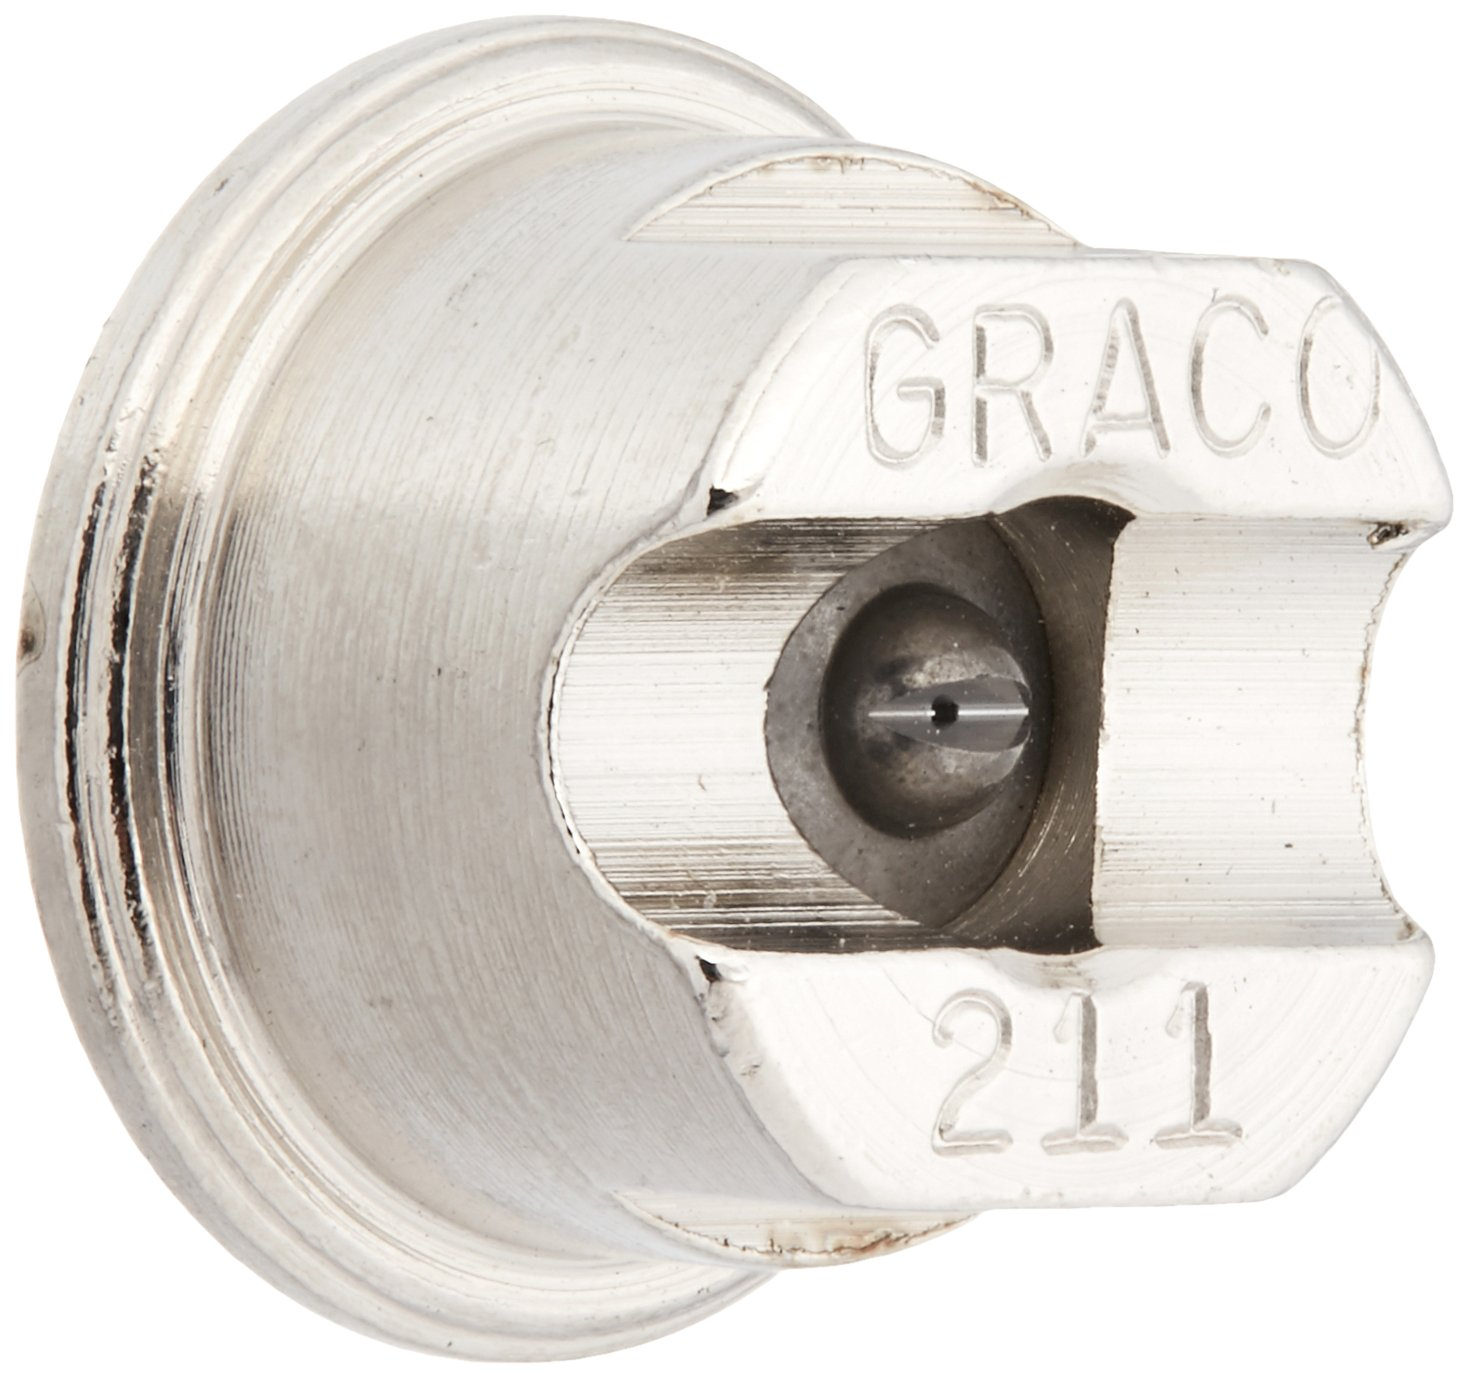 Graco 269211 Contractor Flat Tip for Airless Paint Spray Guns with 0.011-Inch Diameter and 4-Inch Fan Paint Sundries Solutions